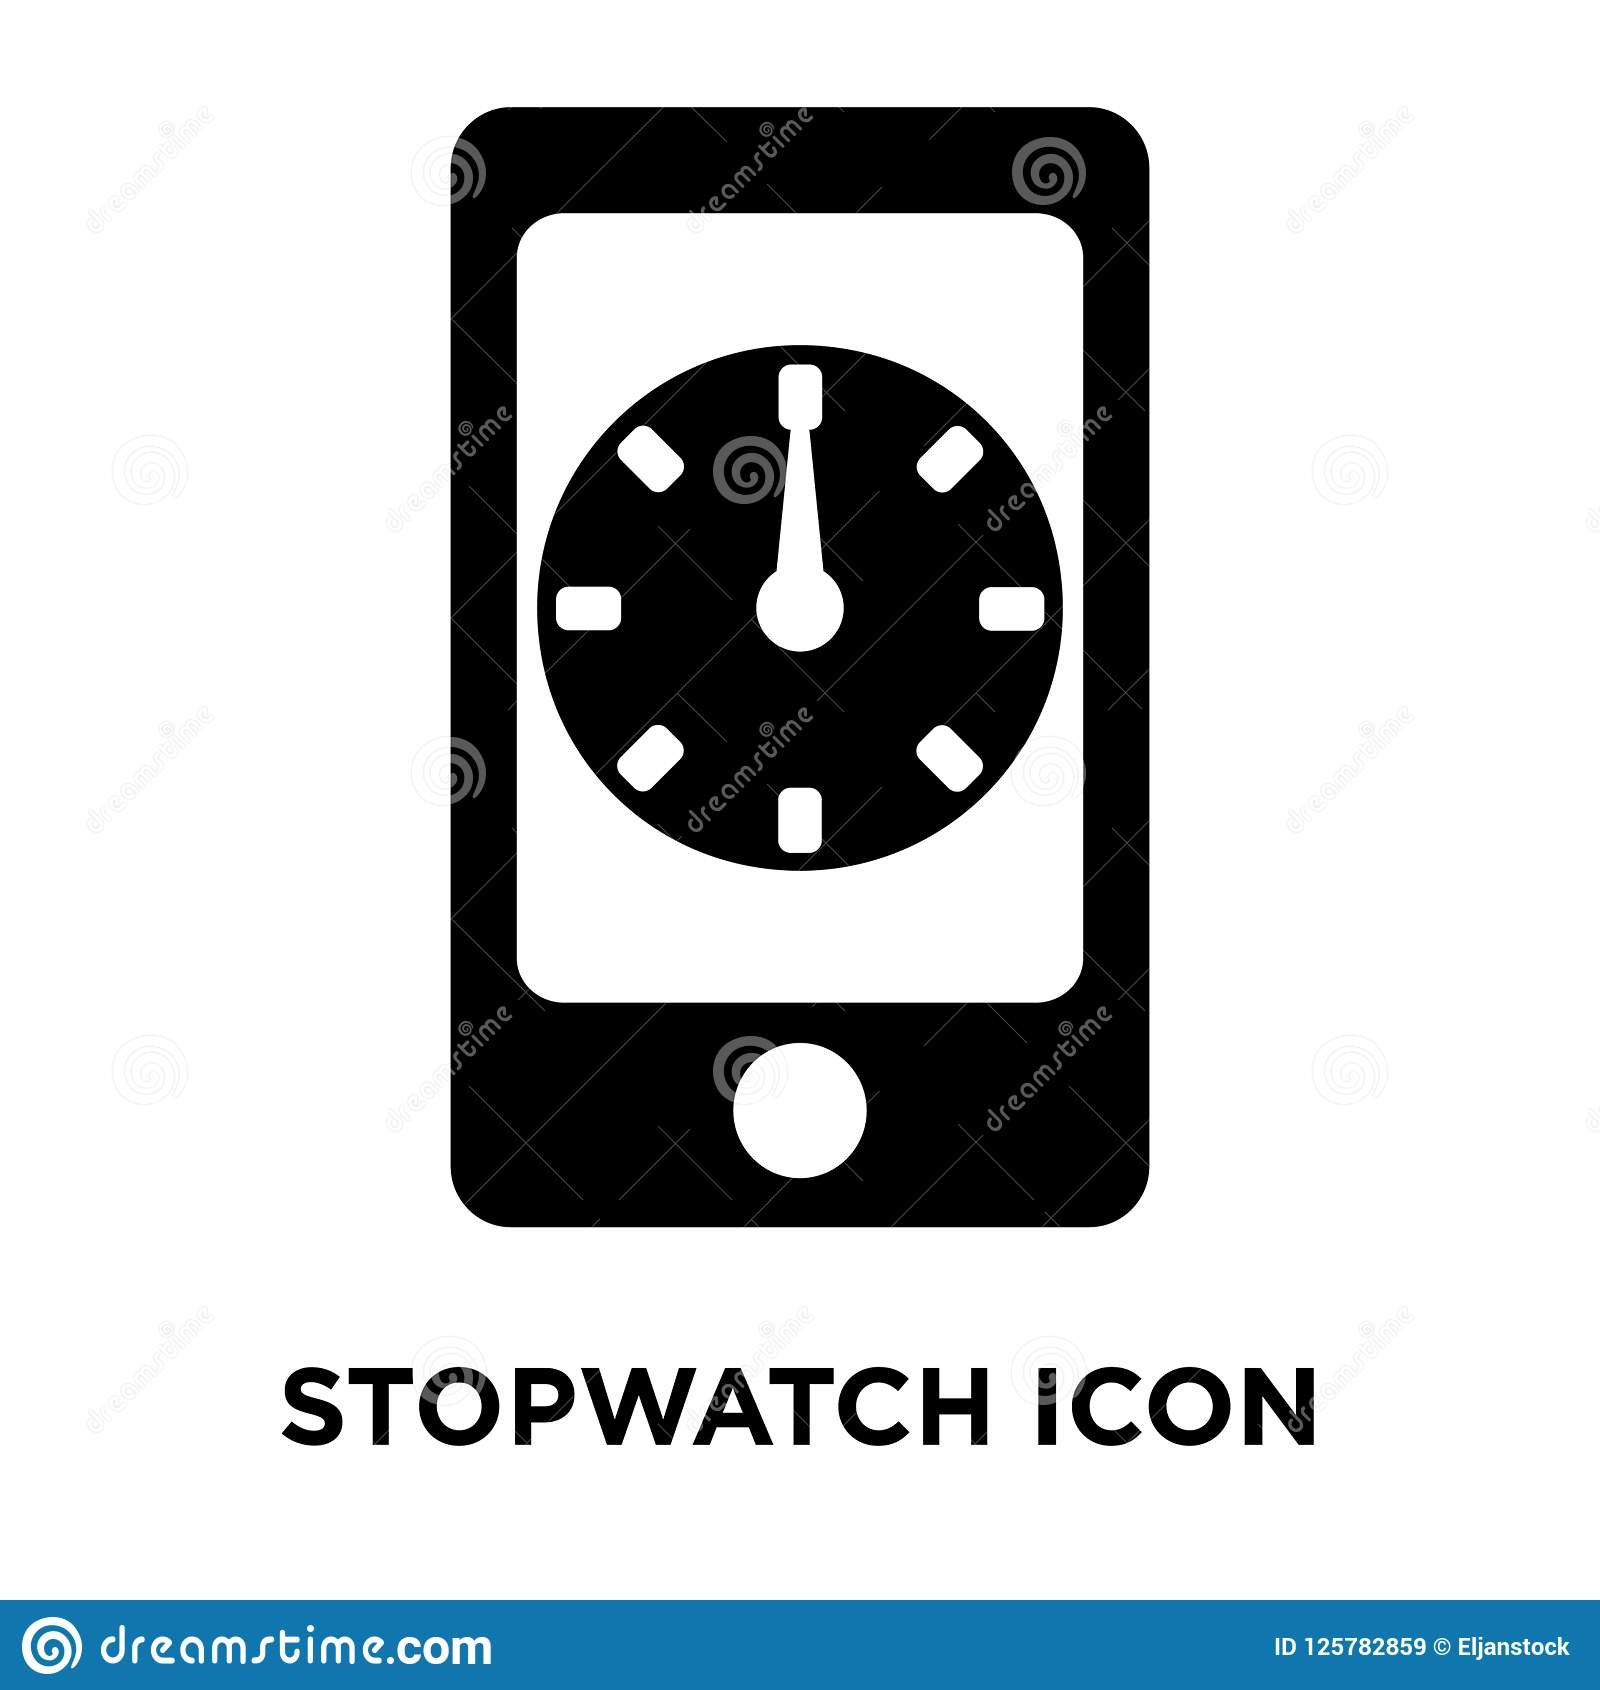 Stopwatch Icon Vector Isolated On White Background, Logo